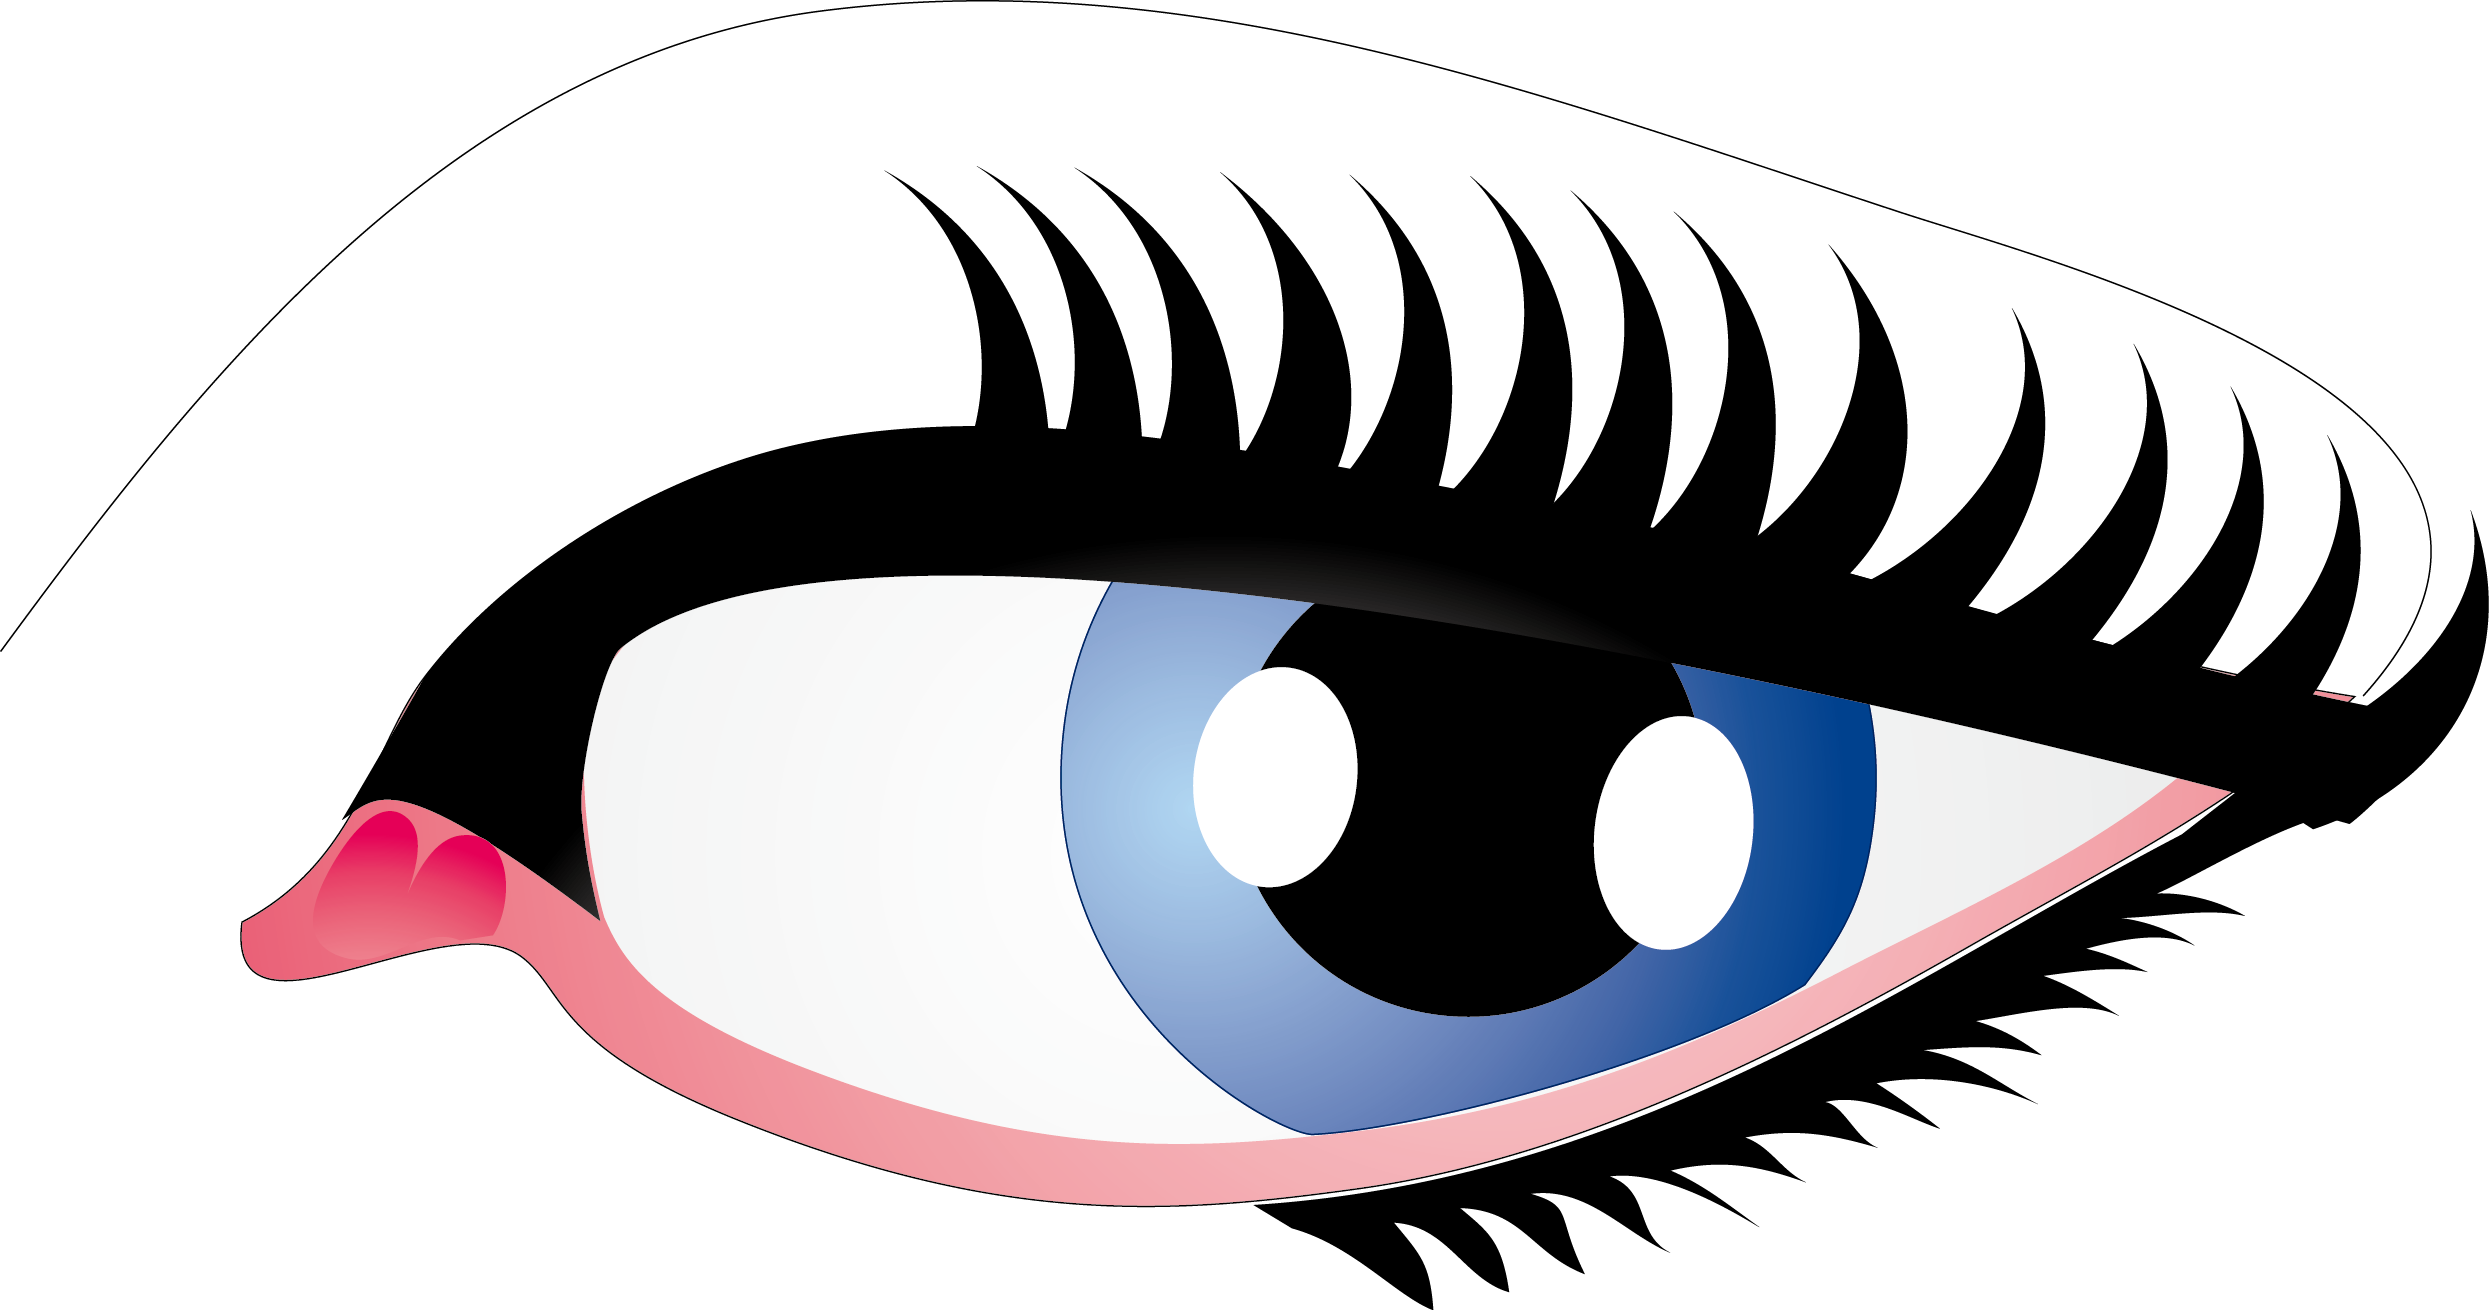 Eyelash clipart perfect eyebrow. Cliparts for free